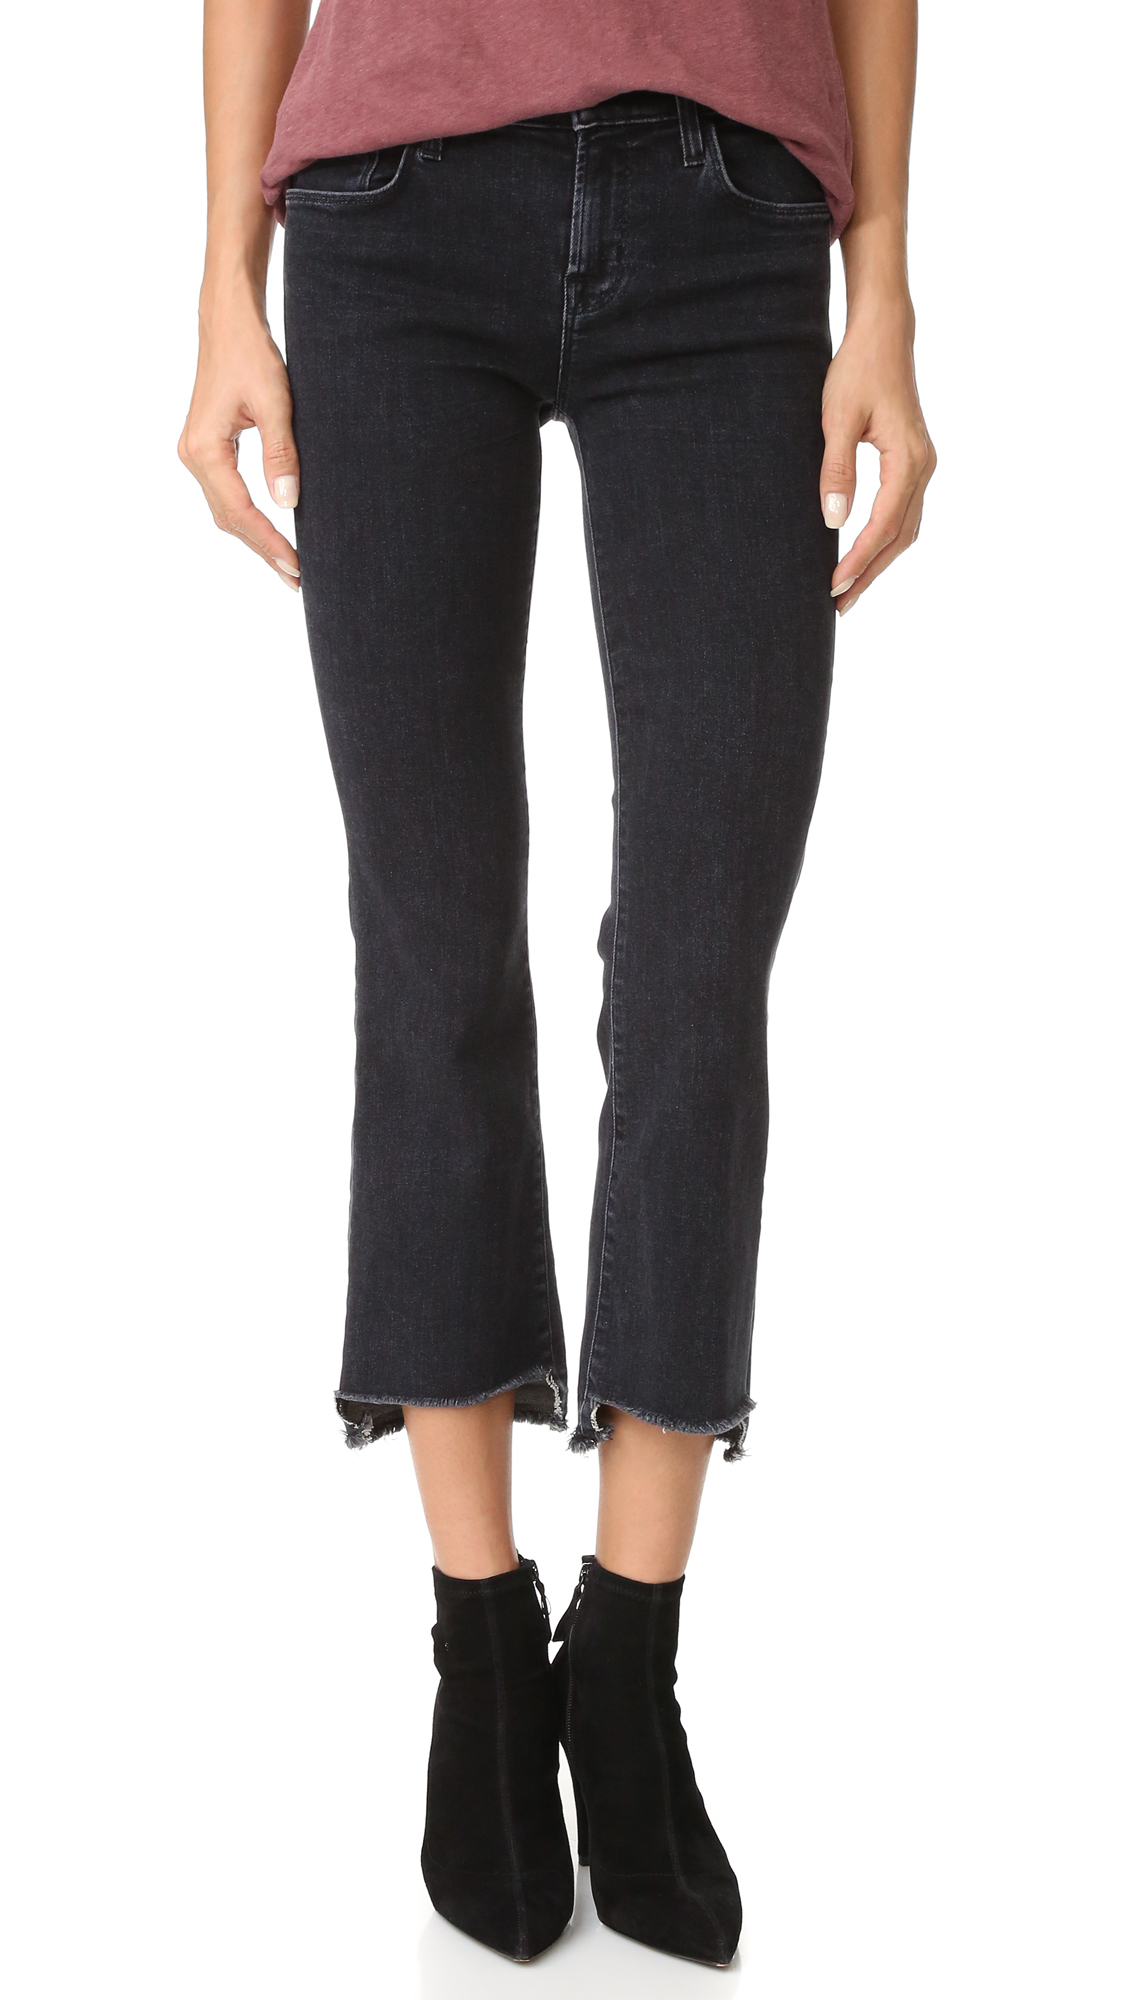 Raw, notched hems lend a hand cropped look to these formfitting J Brand jeans. 5 pocket styling. Button closure and zip fly. Fabric: Stretch denim. 92% cotton/6% elastomultiester/2% elastane. Wash cold. Made in the USA. Imported materials. Measurements